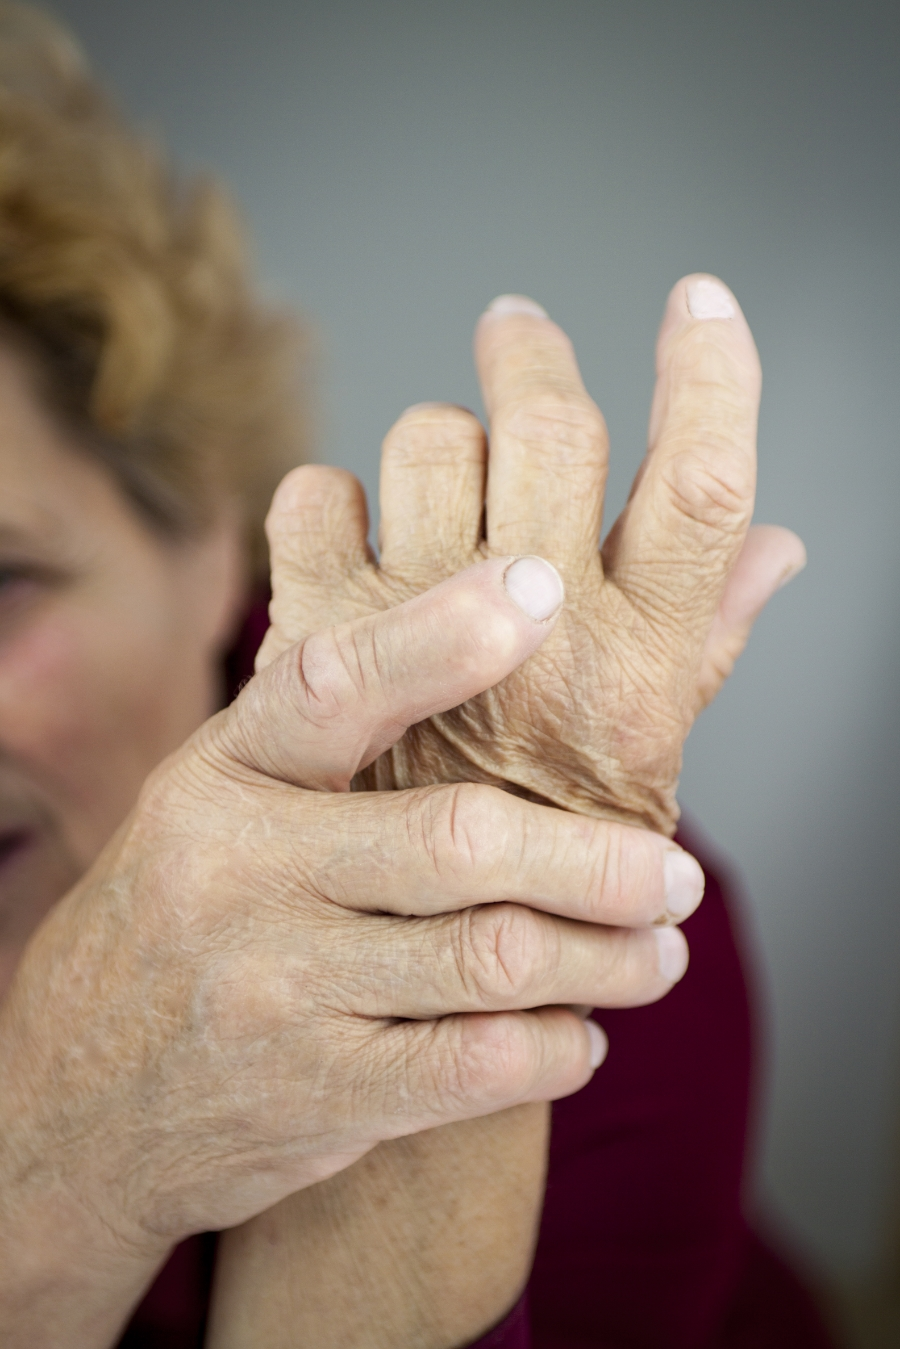 relieving joint pain with joint supplements